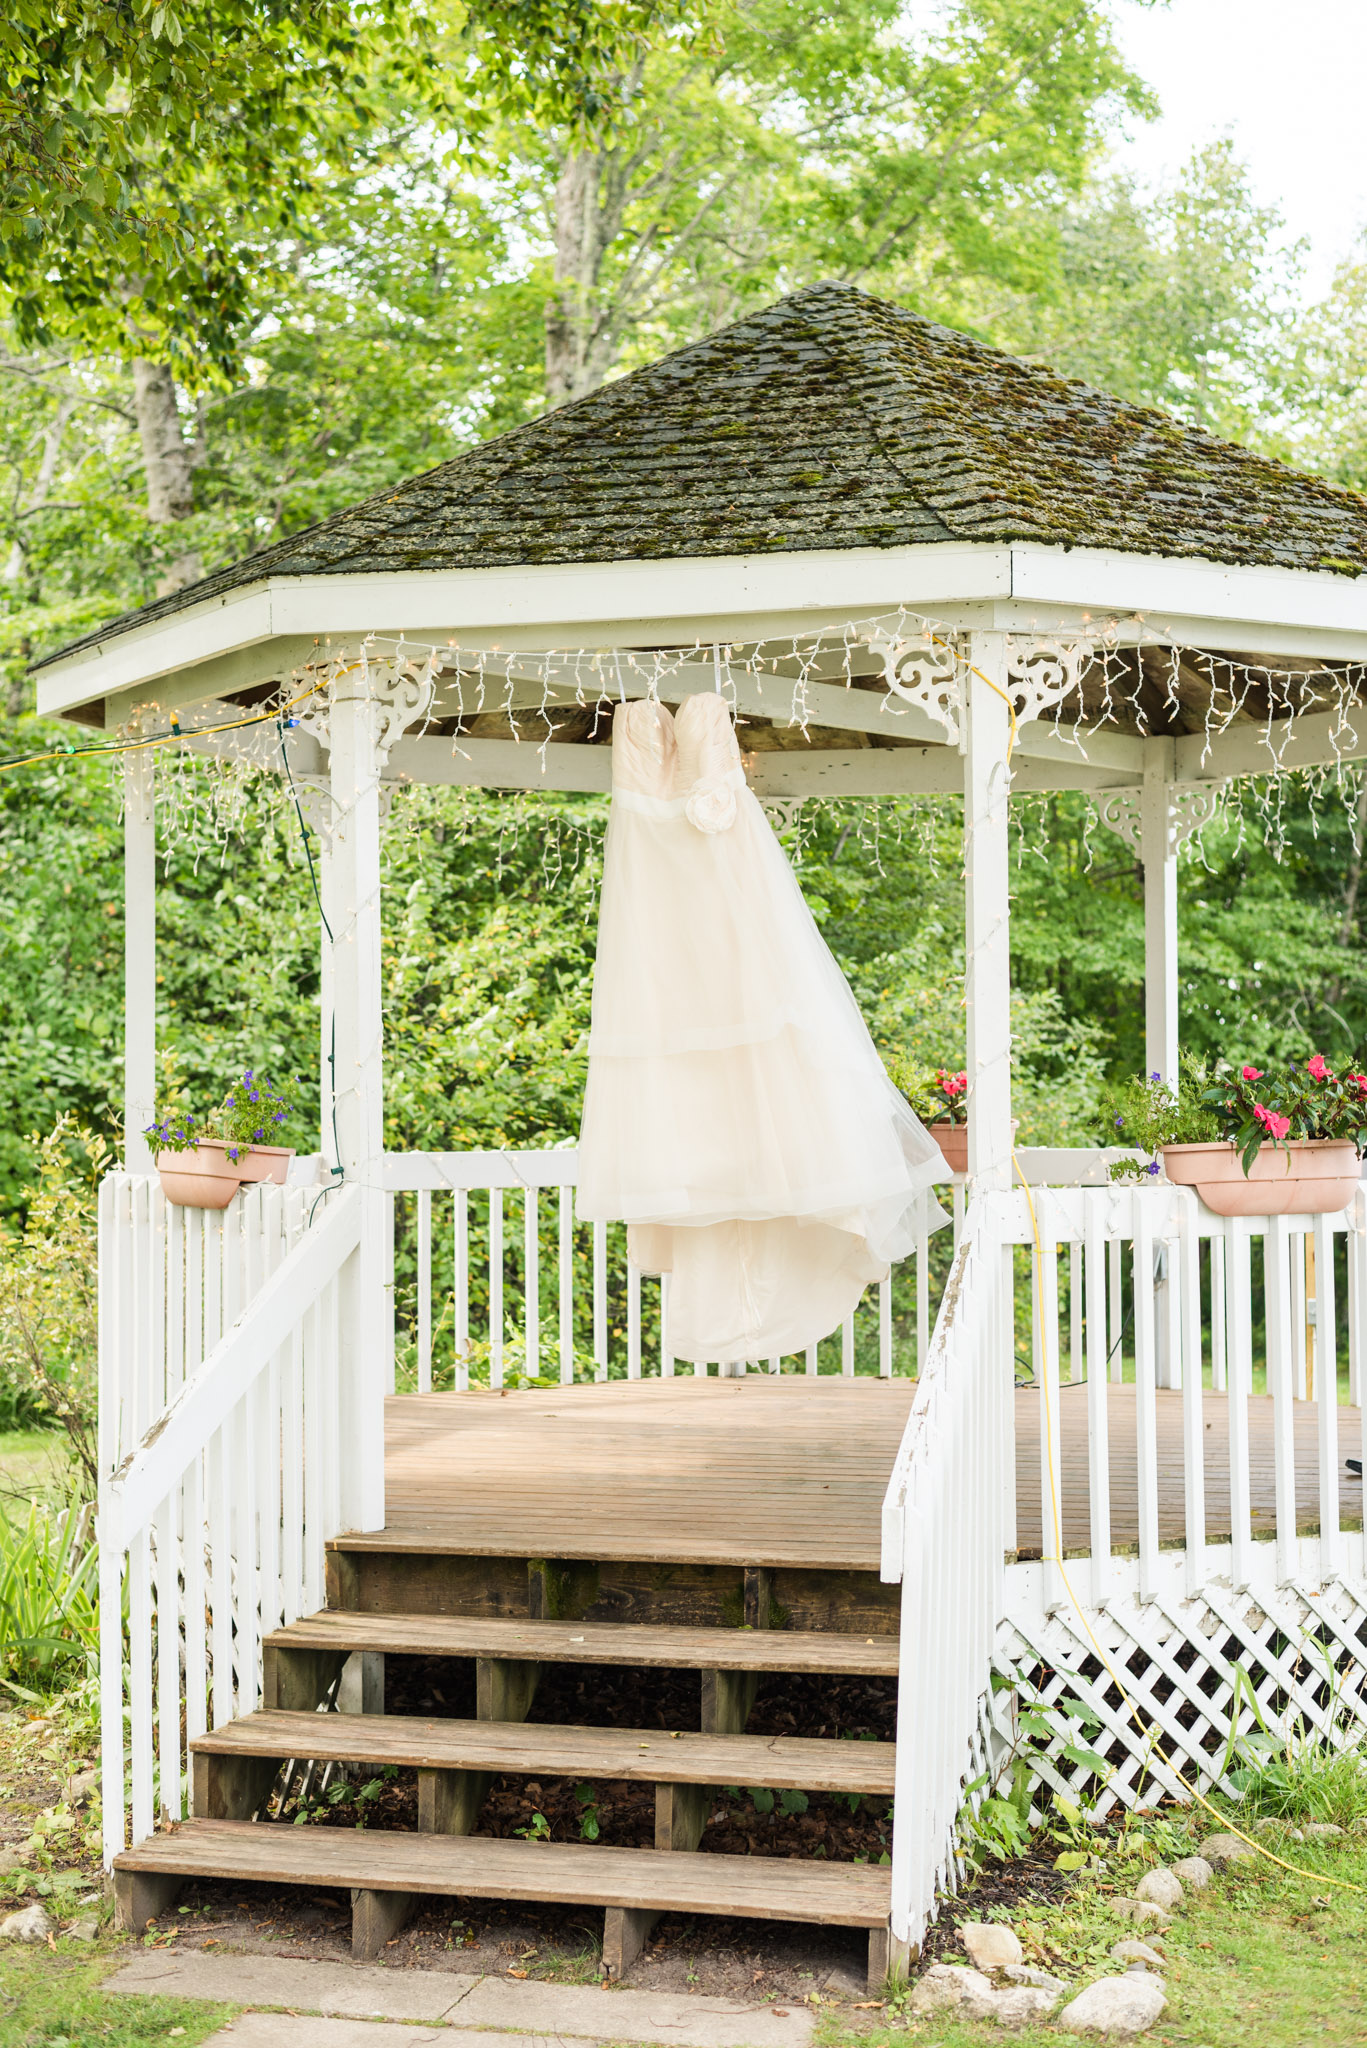 wedding at chamberlins ole forest inn, wedding details, wedding gown hanging in gazebo